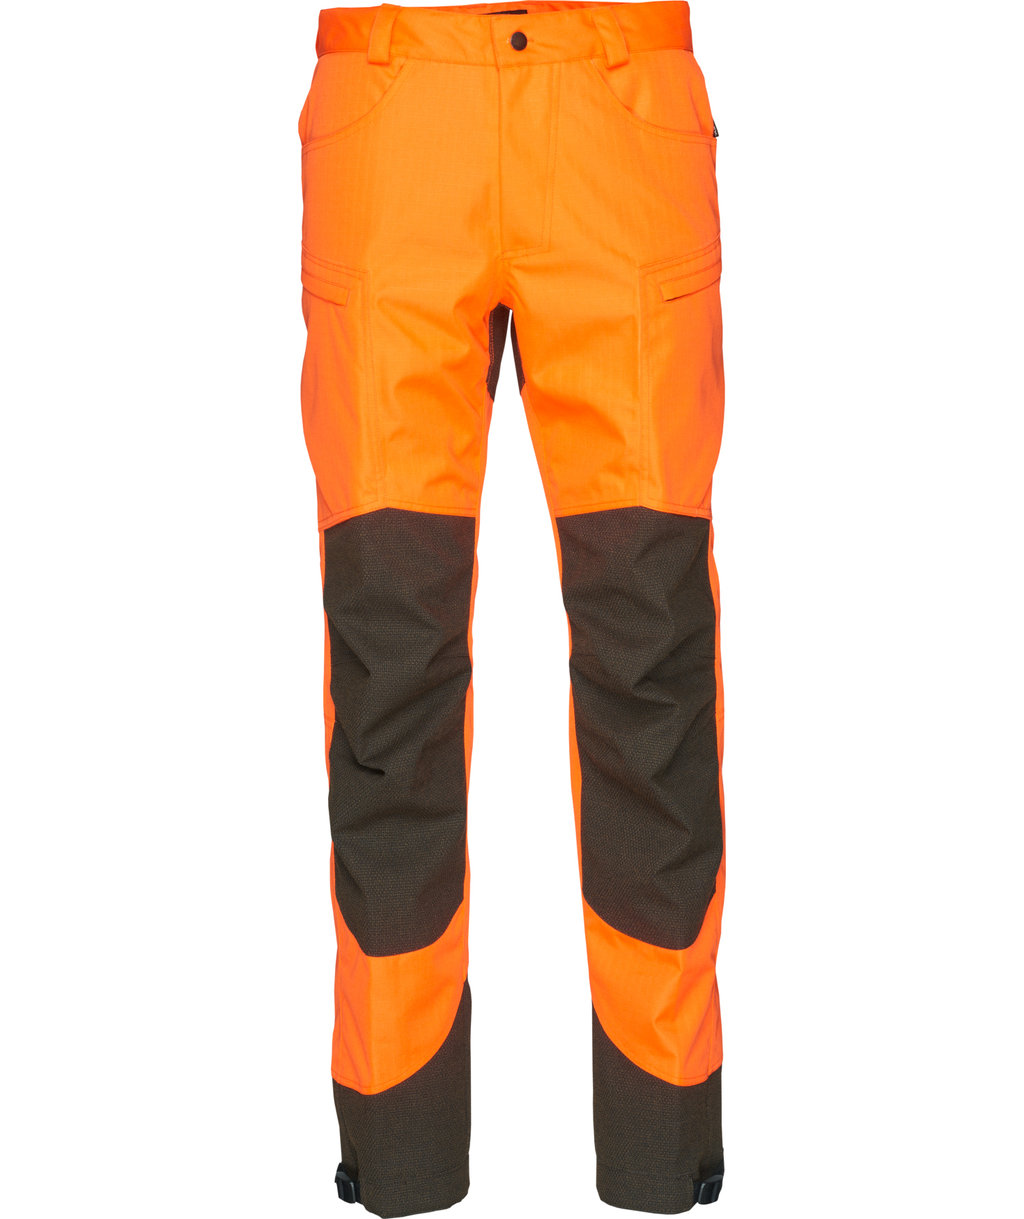 Seeland Kraft trousers, Hi-Vis Orange